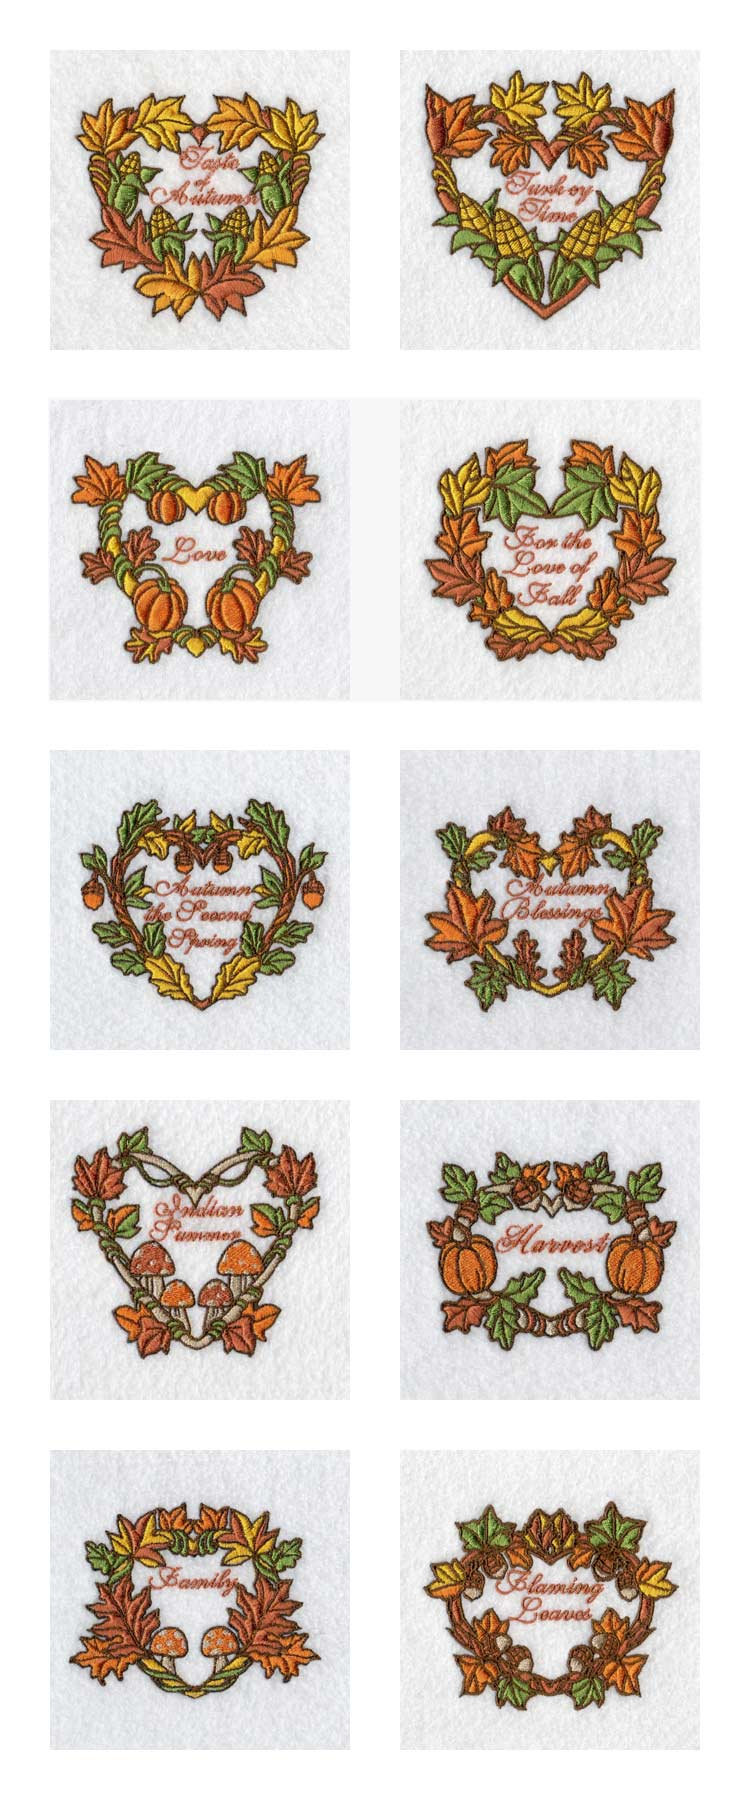 For The Love of Fall Embroidery Machine Design Details